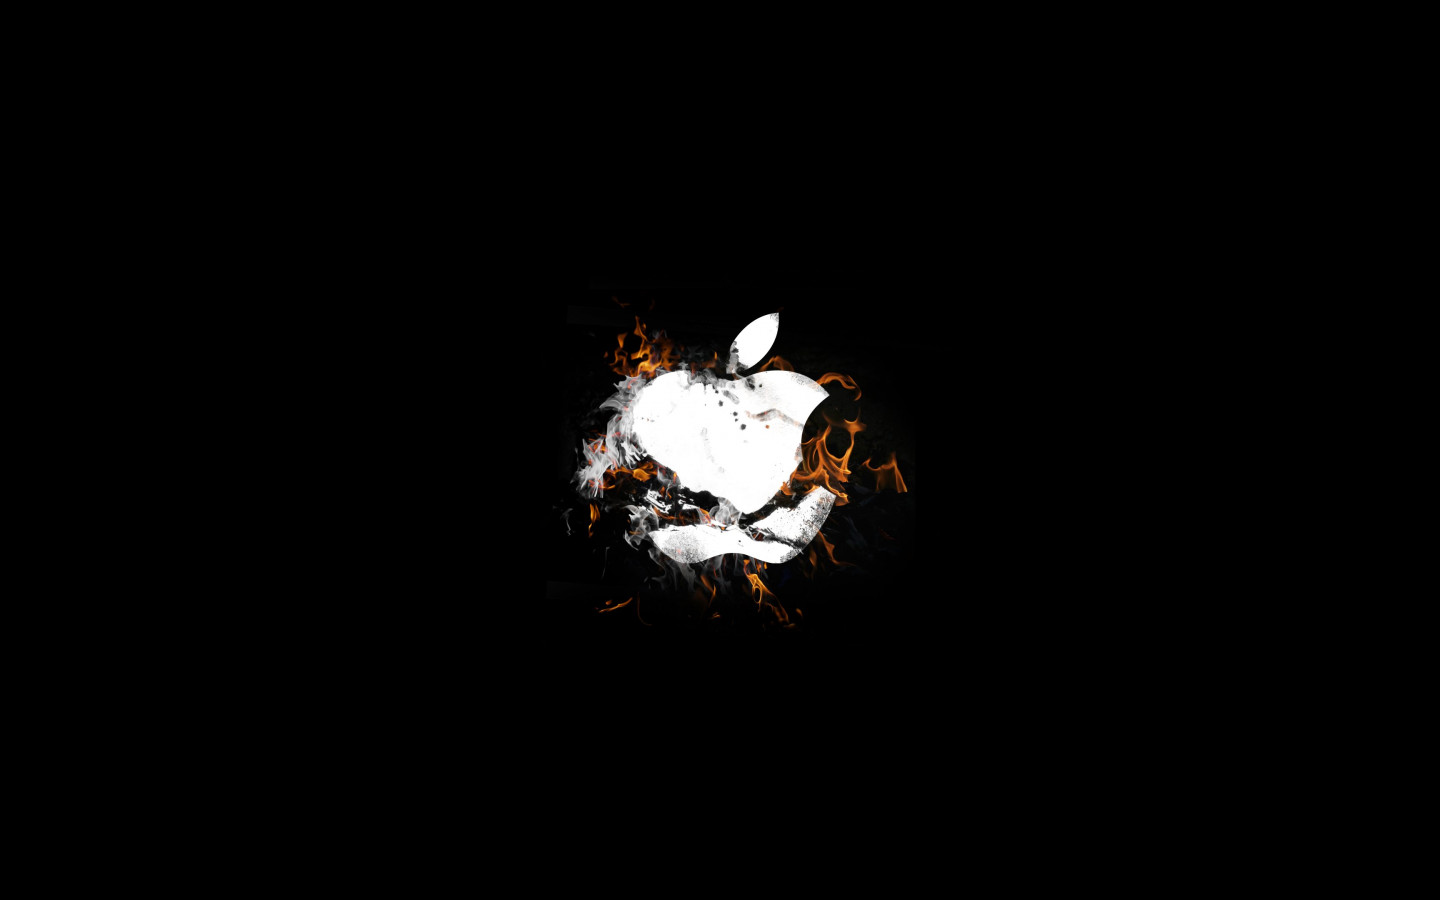 The Apple is on fire wallpaper 1440x900